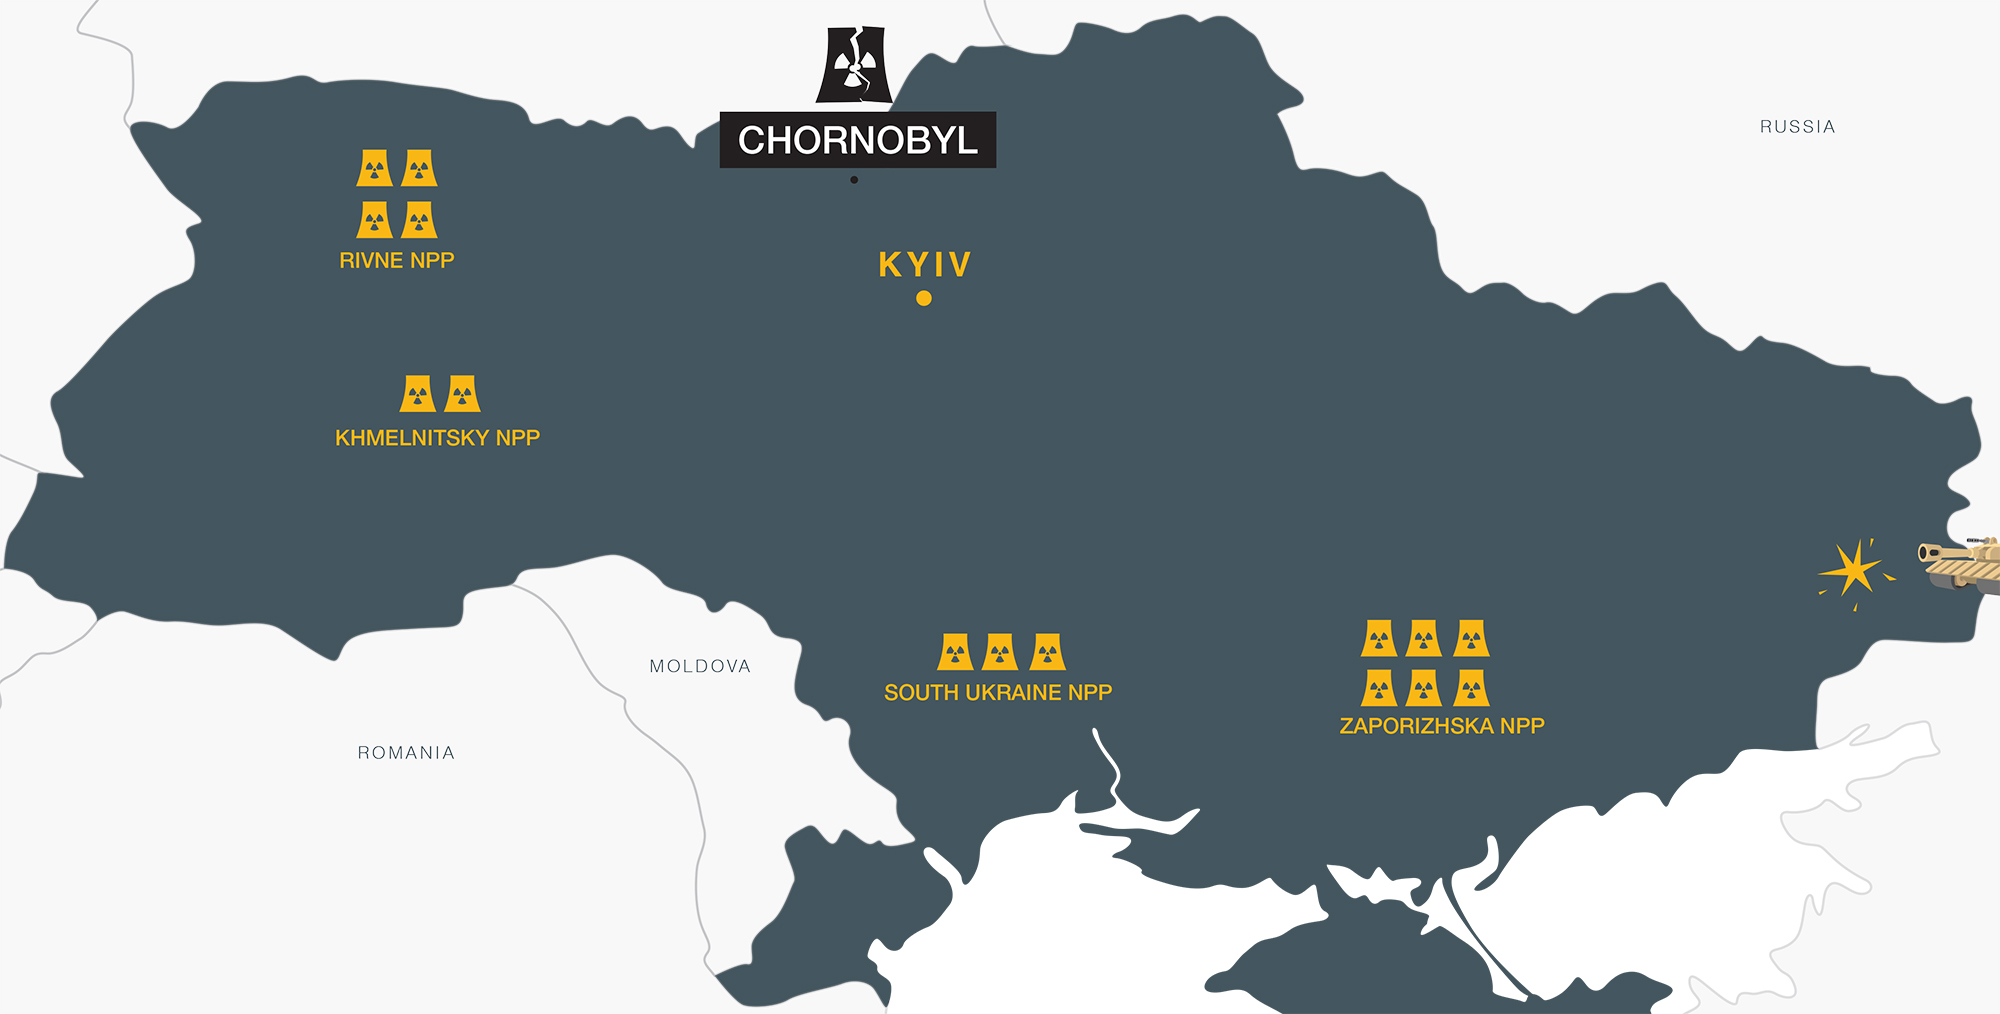 Nuclear Power Plants in Russia